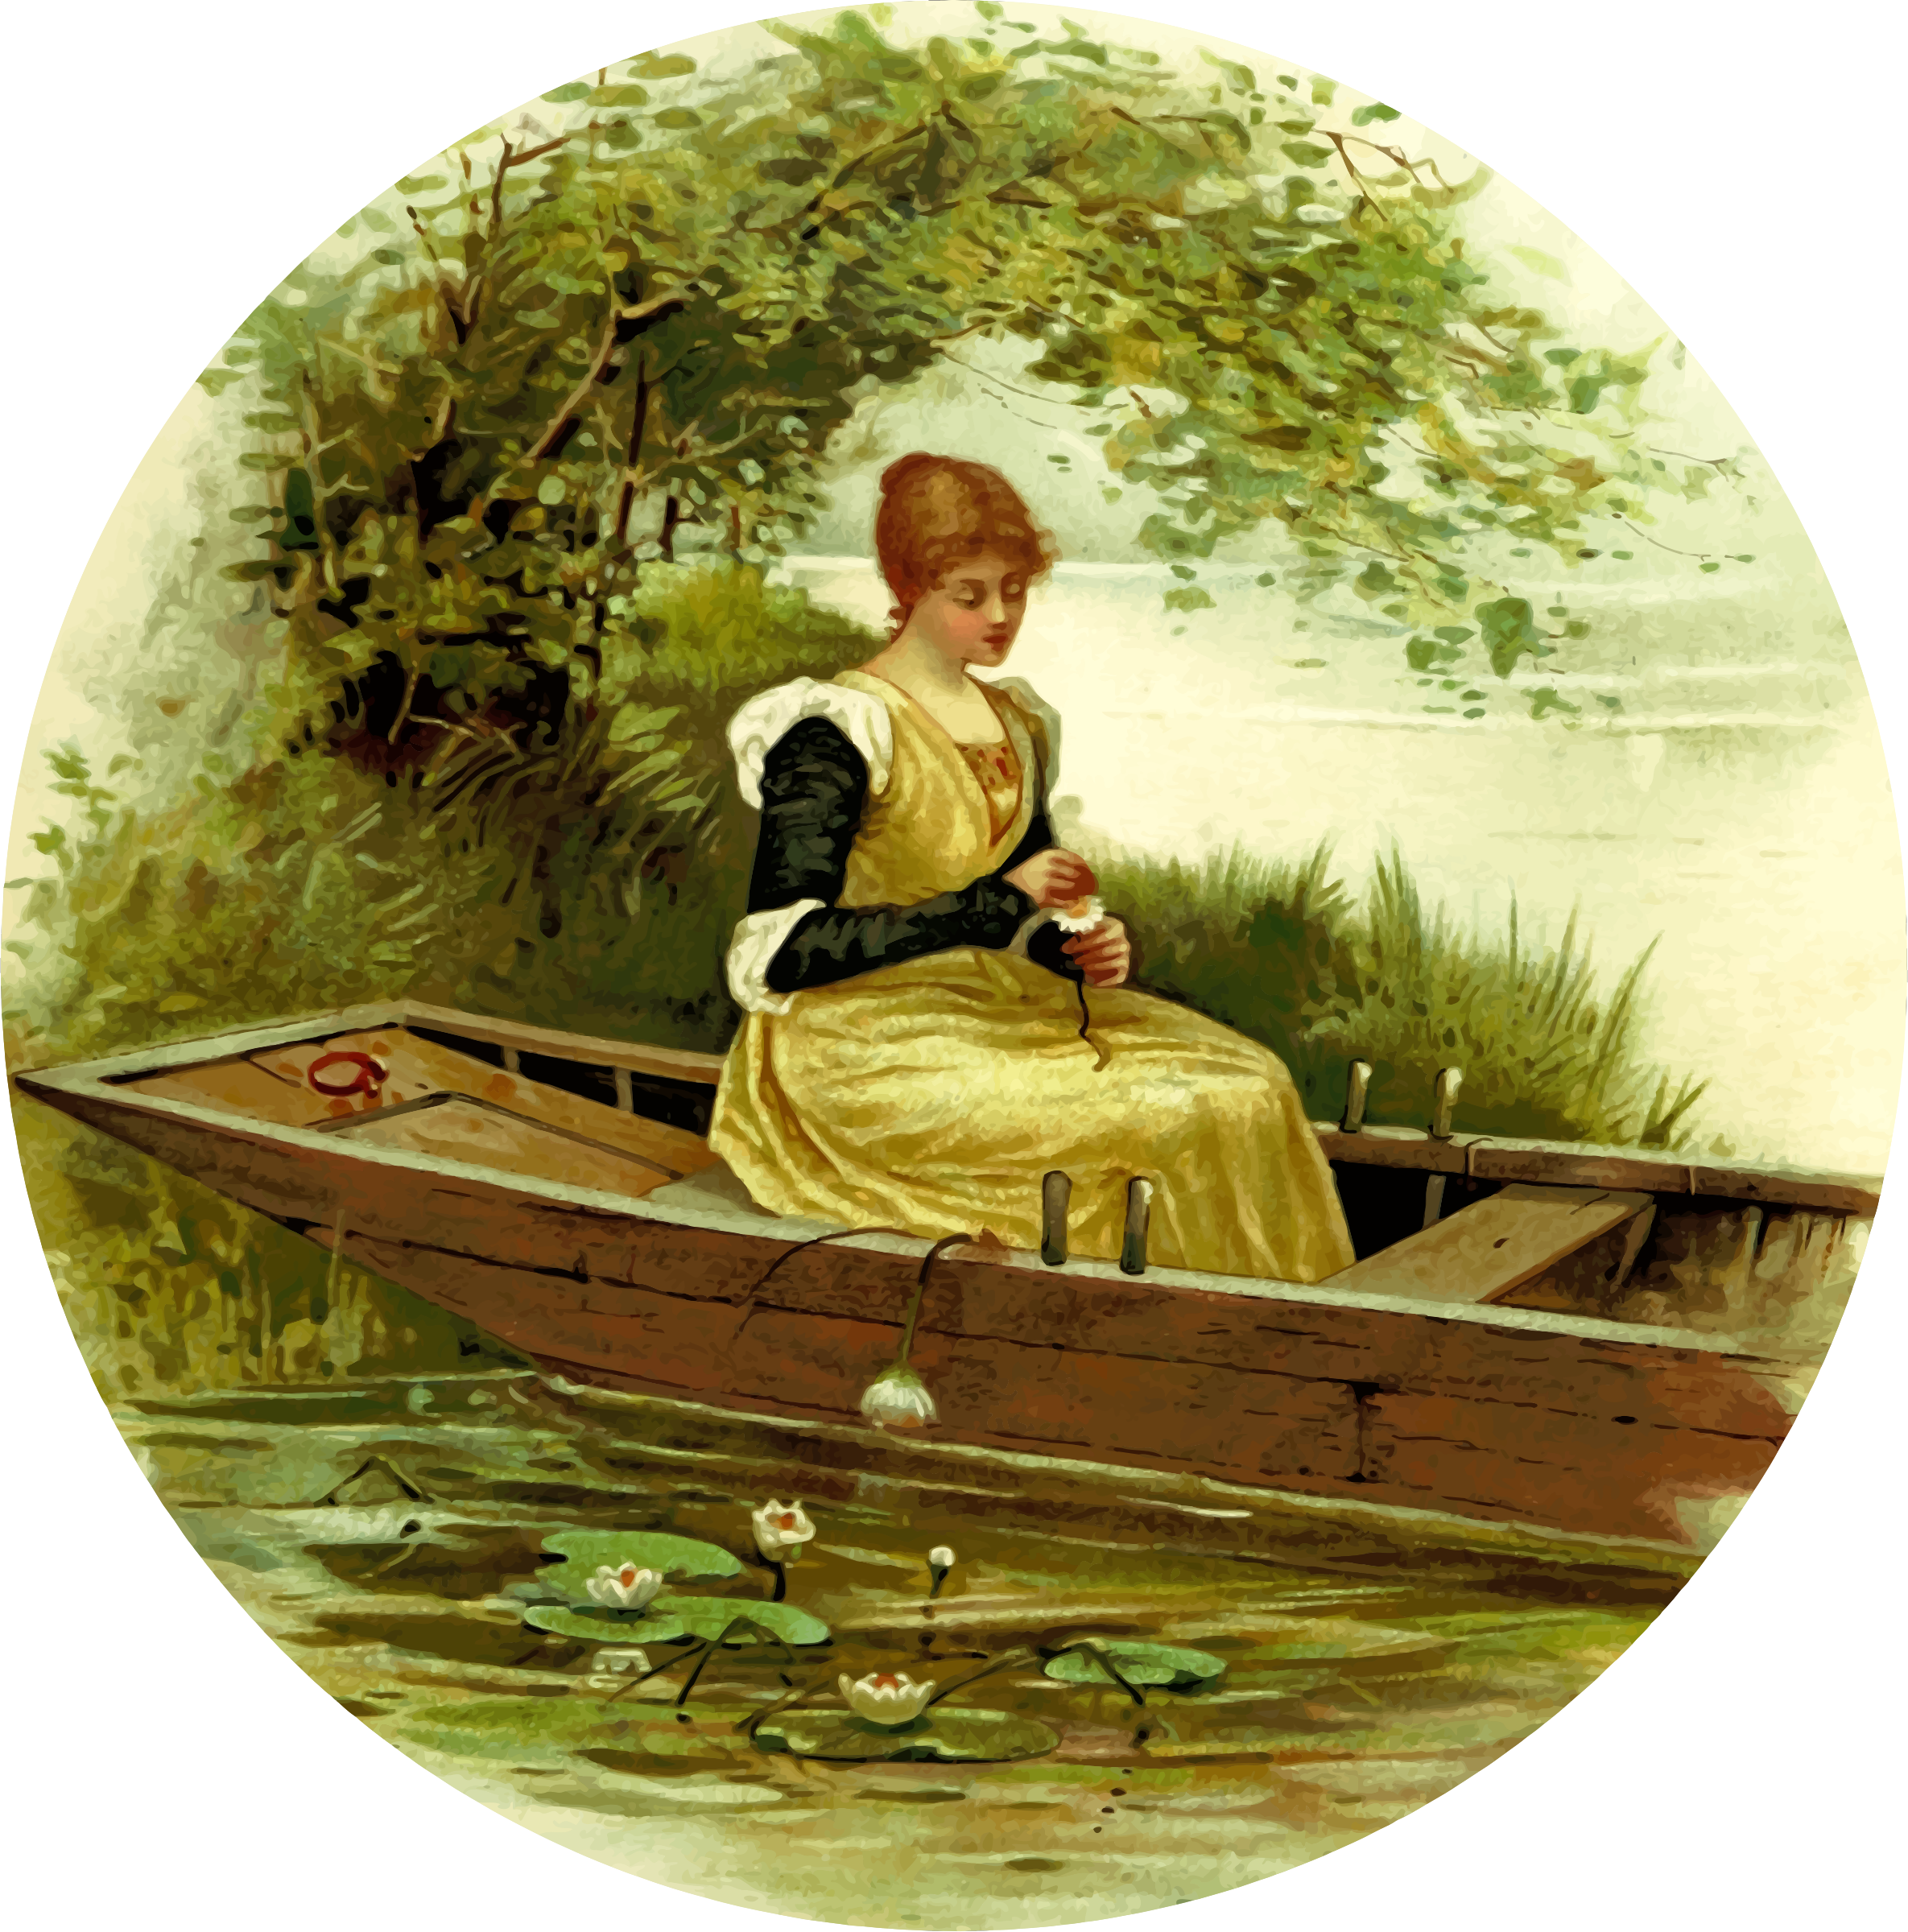 Riverbank scene by Firkin